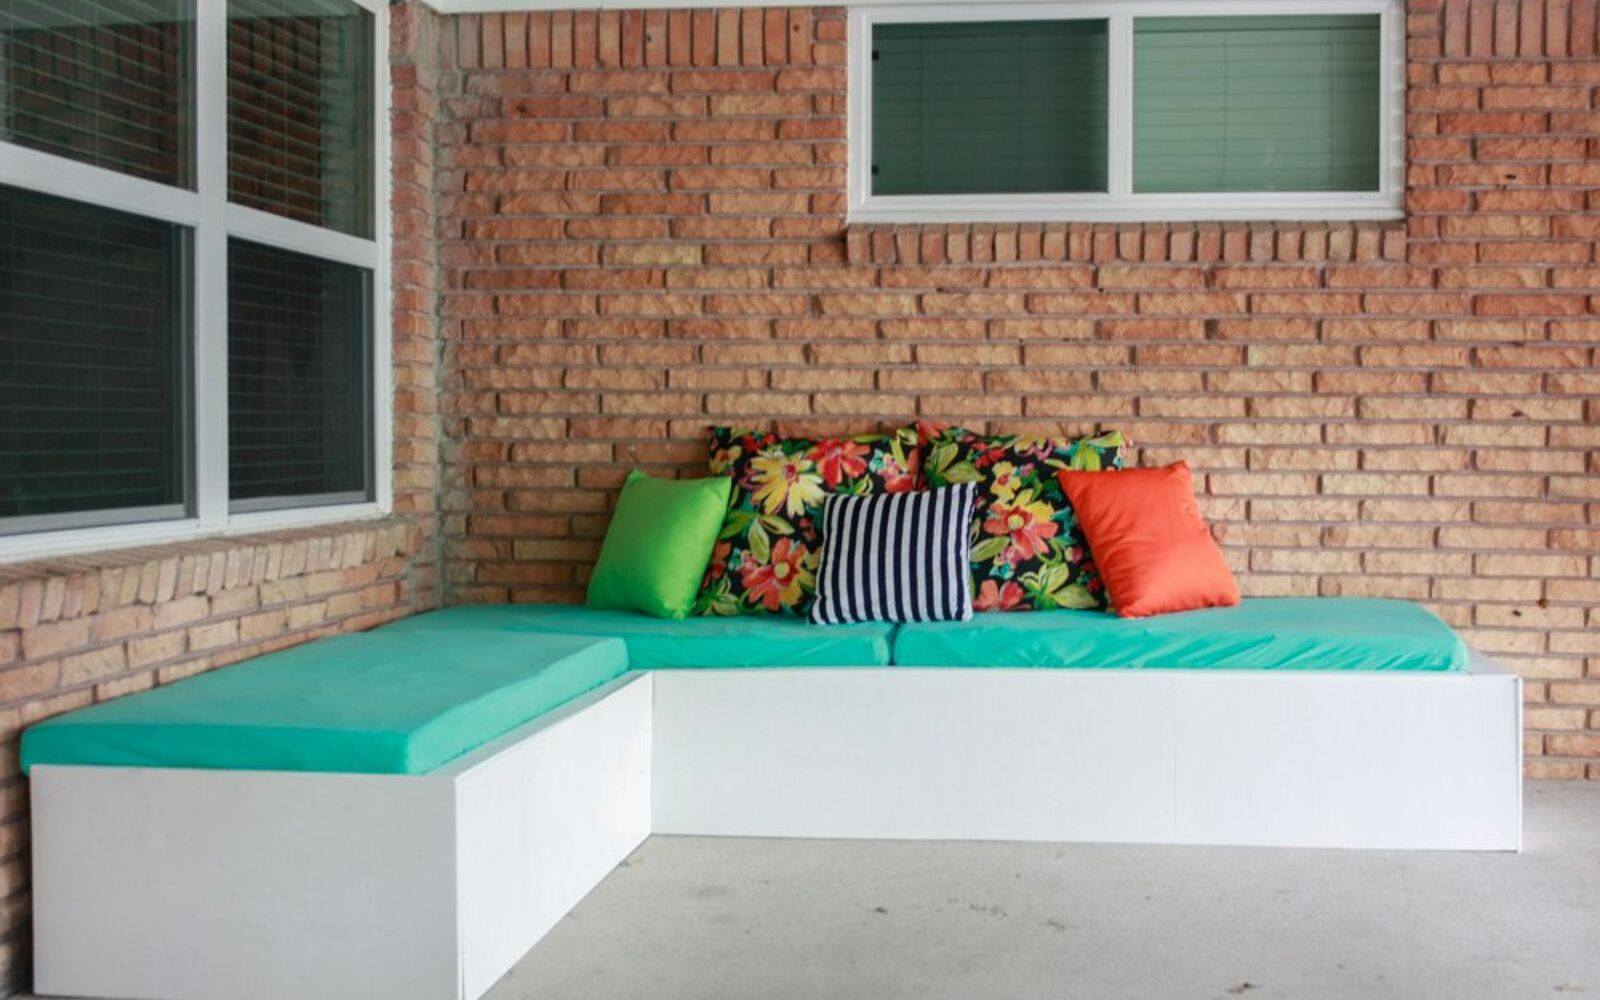 s upgrade your backyard with these 30 clever ideas, Set up a corner couch using pallets